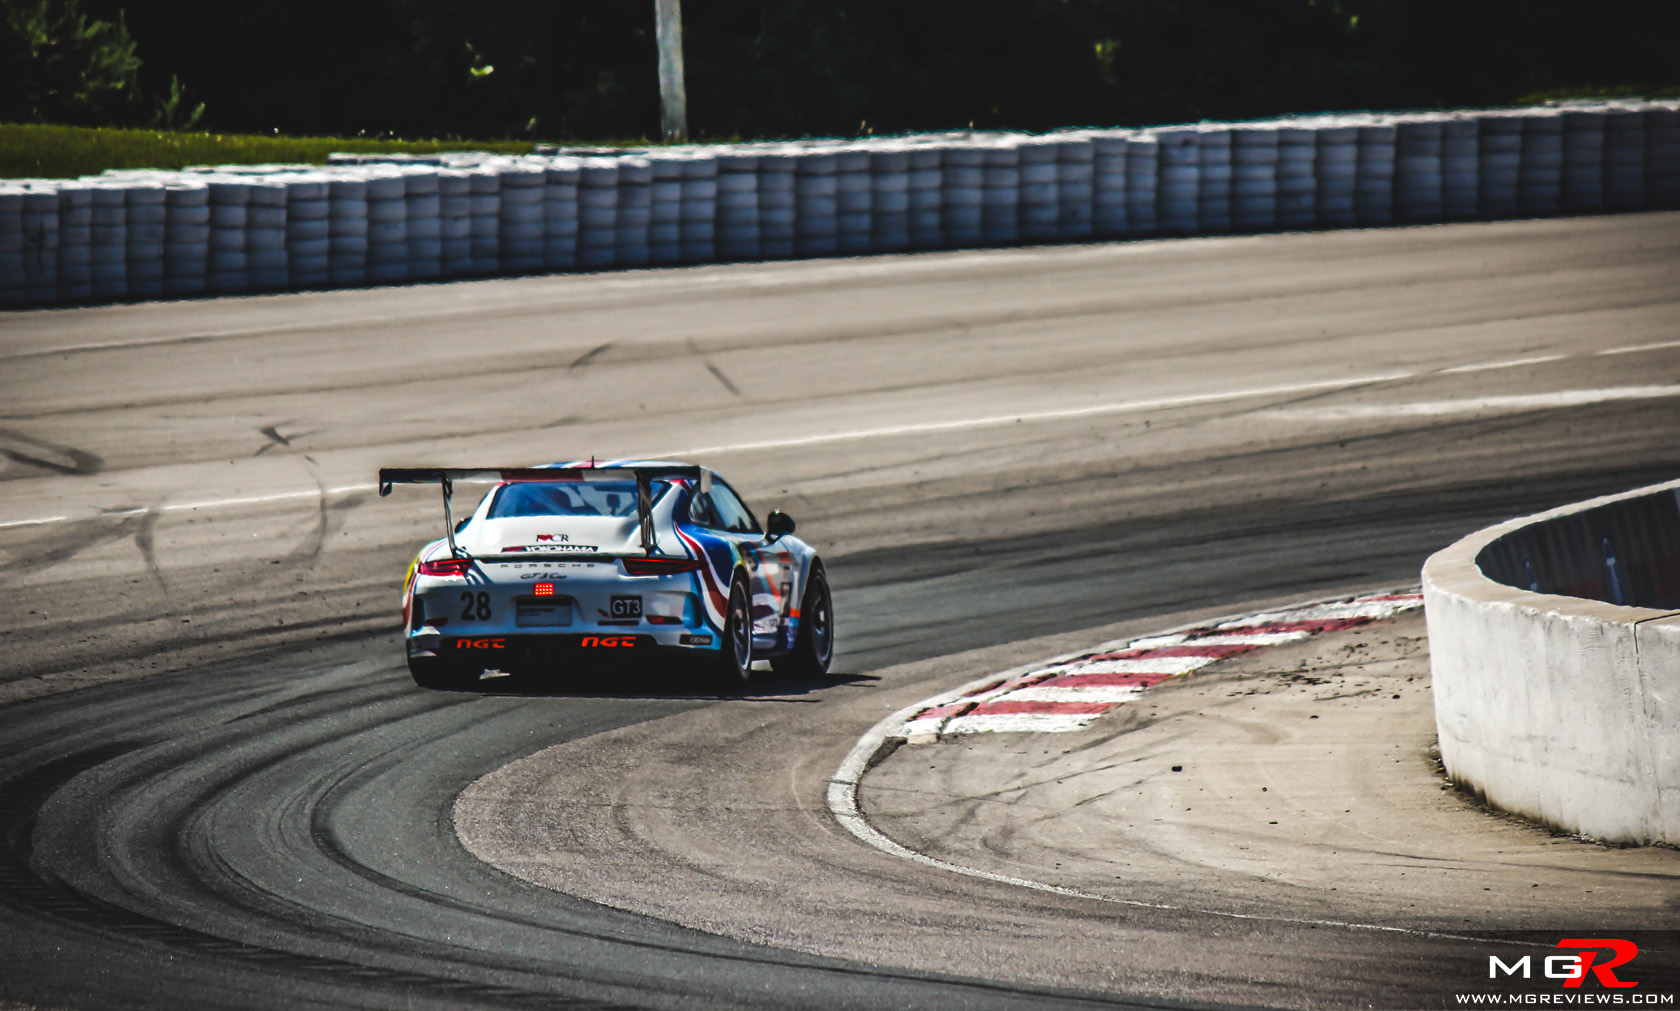 Photos Porsche 911 Gt3 Cup M G Reviews